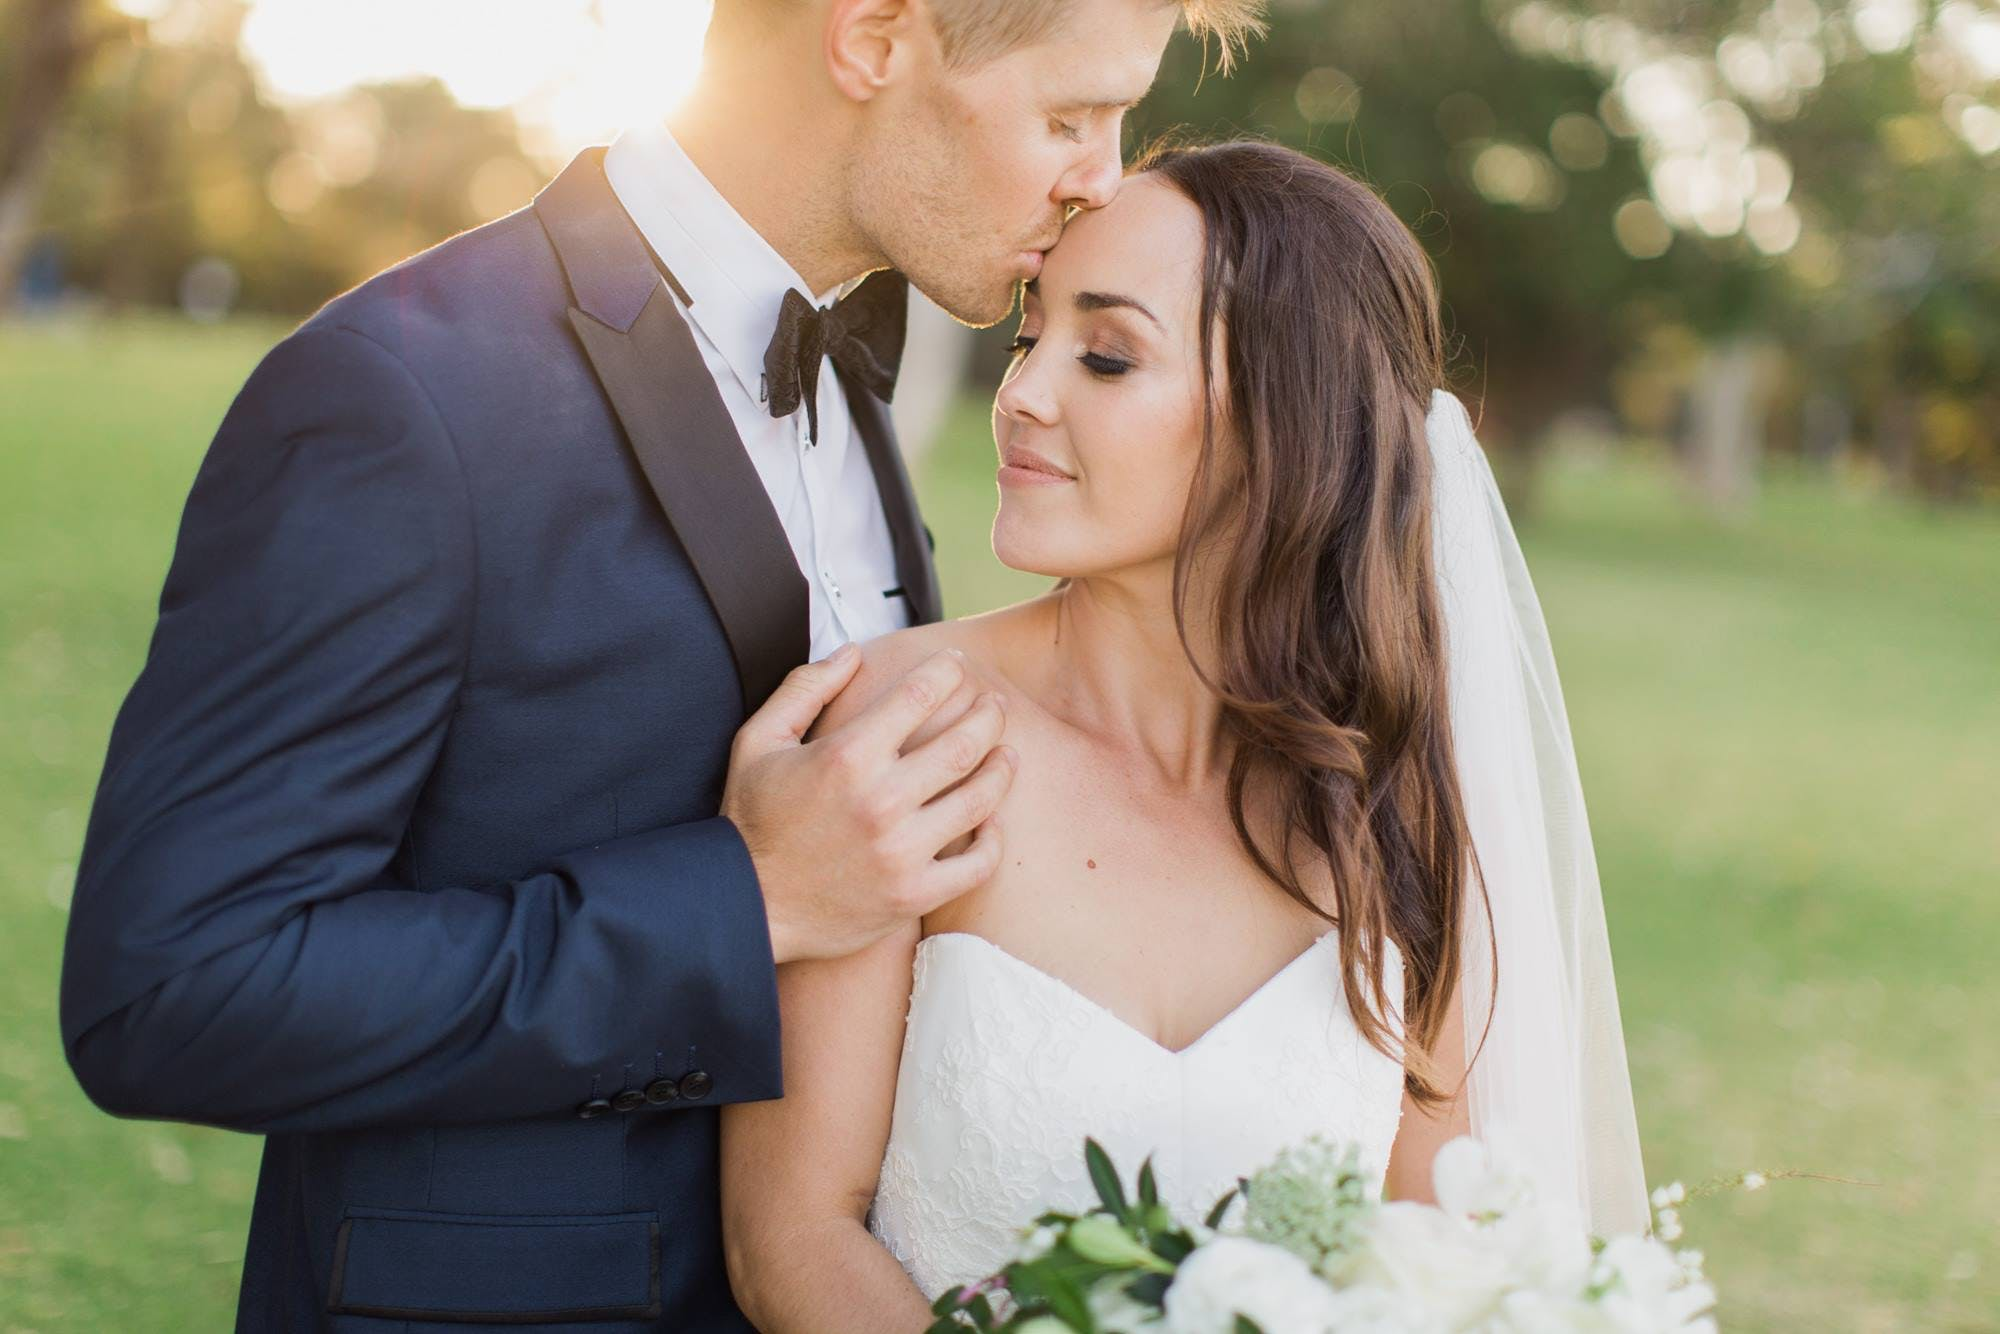 Outsourcing your photo editing as a wedding photographer to save time